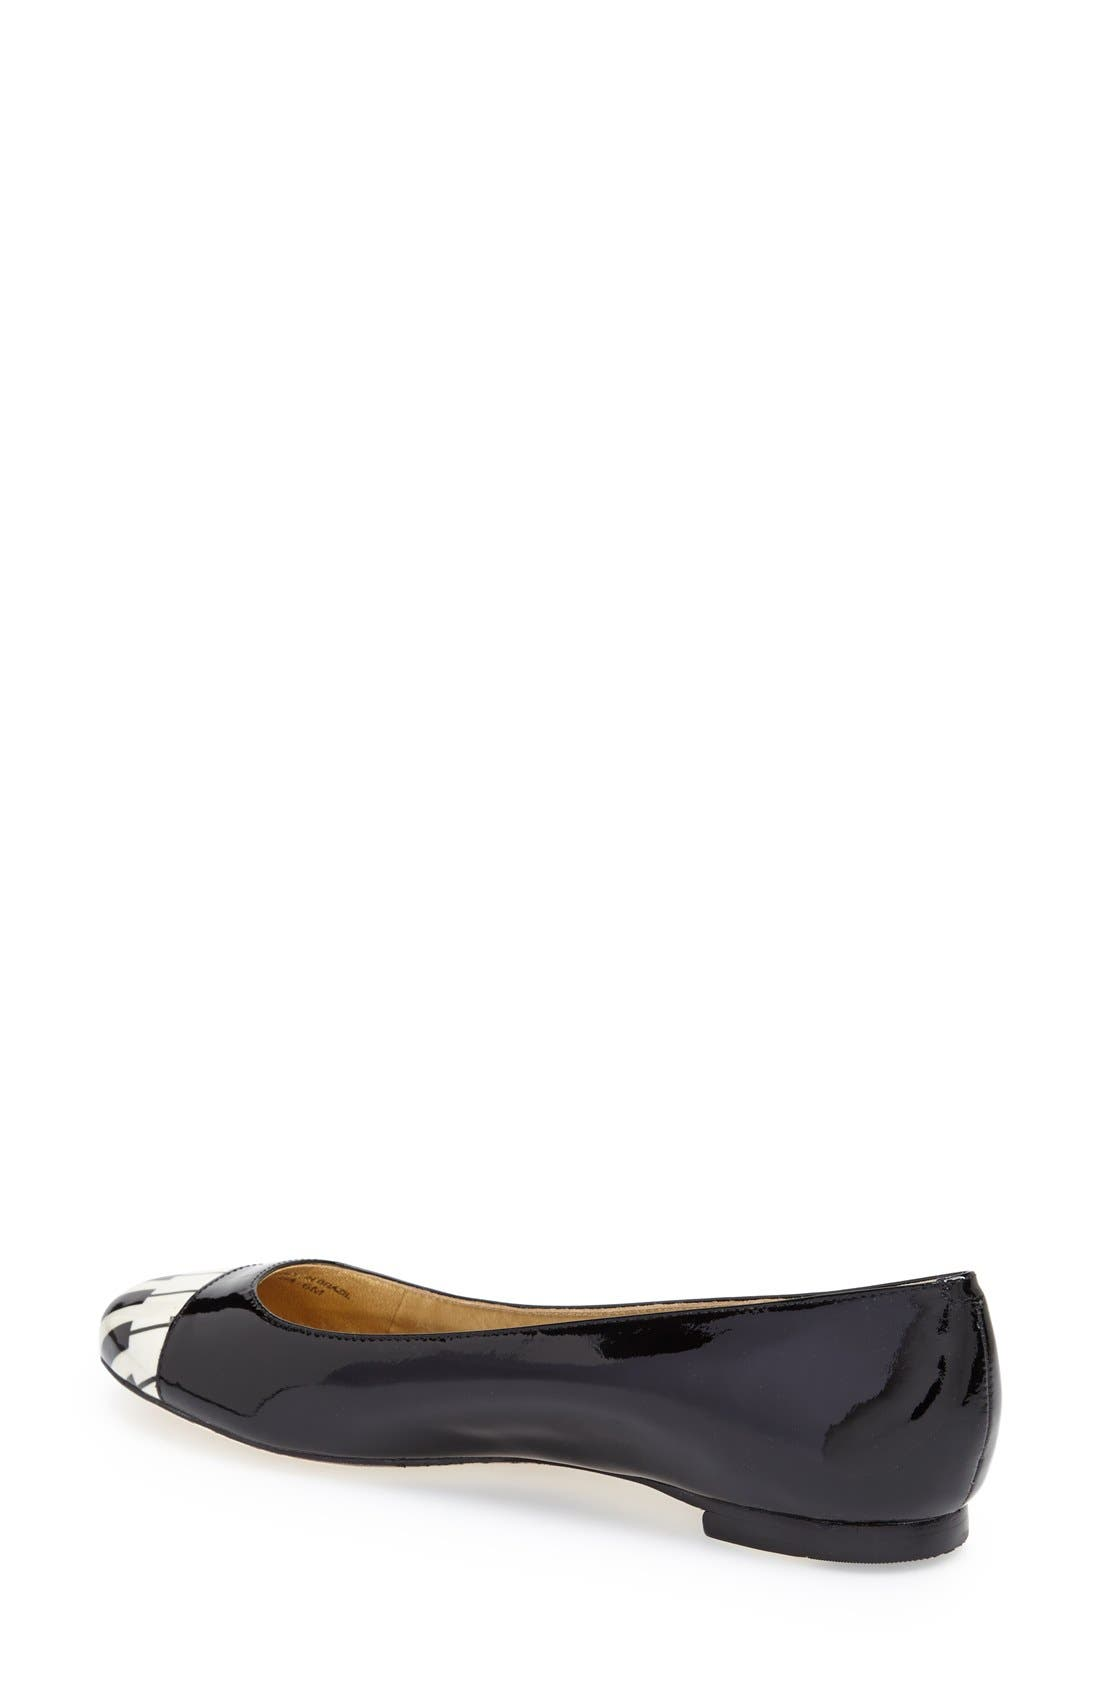 Alternate Image 2  - kate spade new york 'jazz' flat (Women)